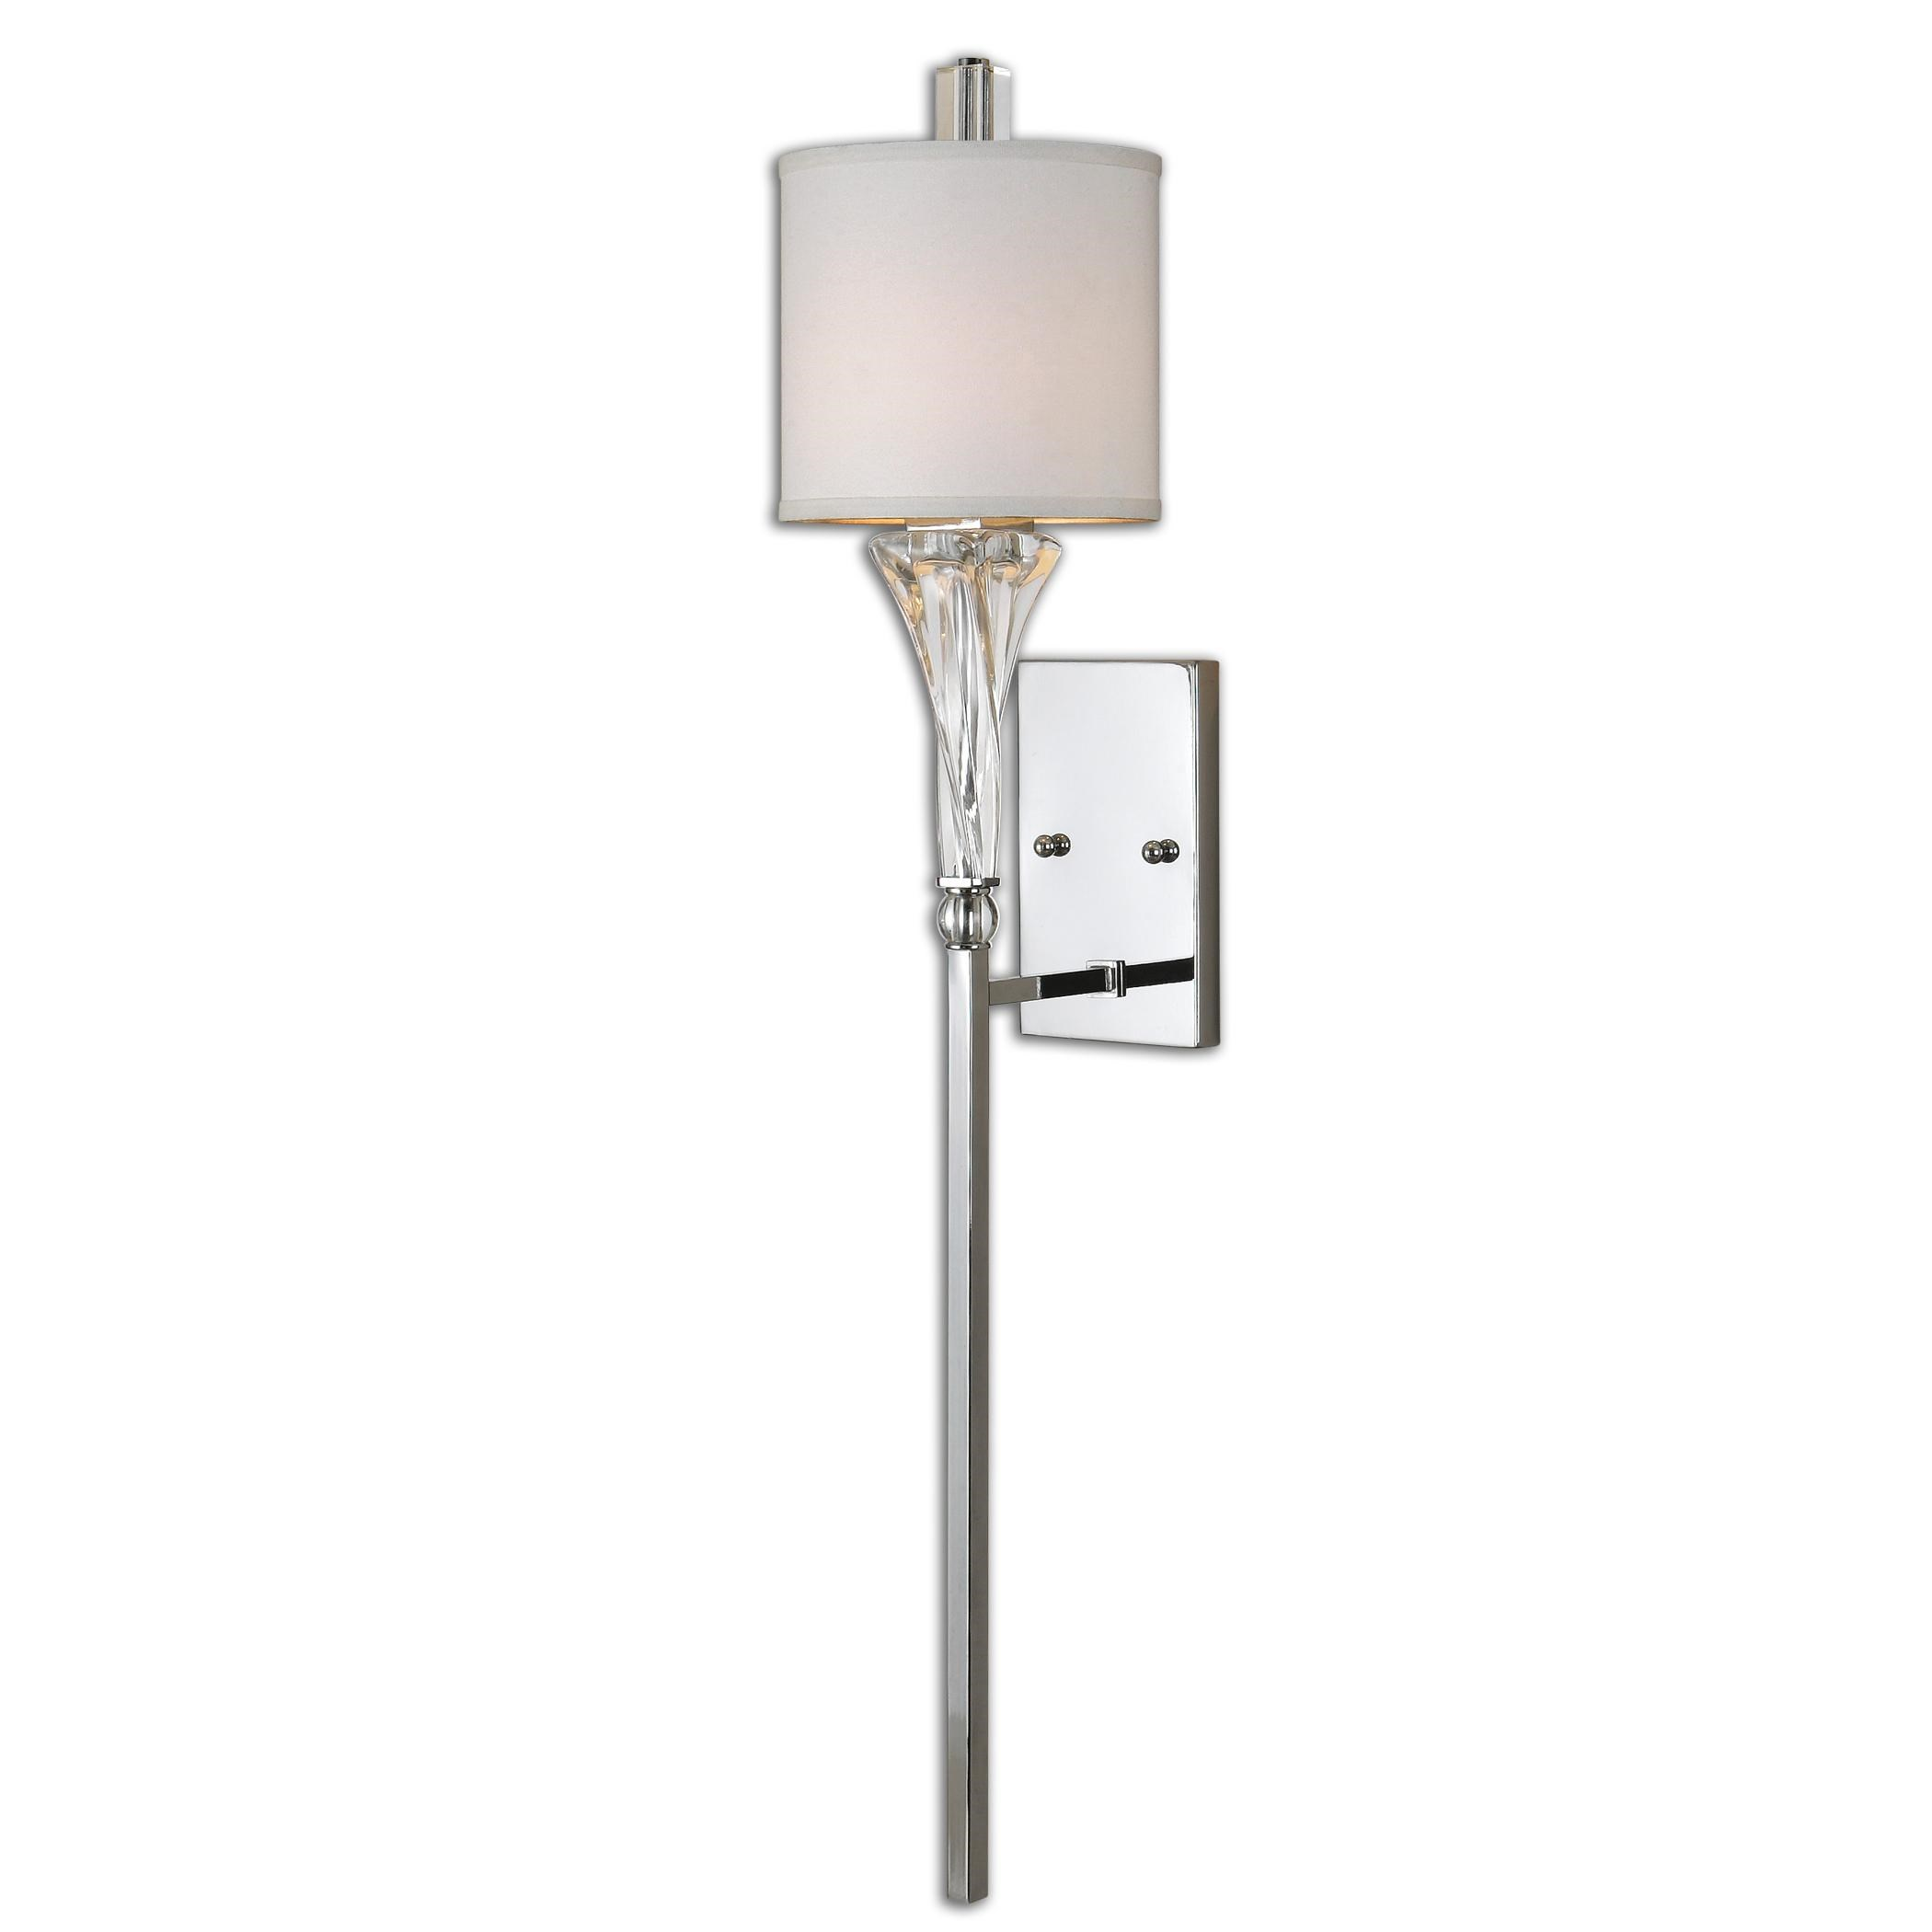 Uttermost Lighting FixturesUttermost Grancona 1 Light Chrome Wall Sconc ...